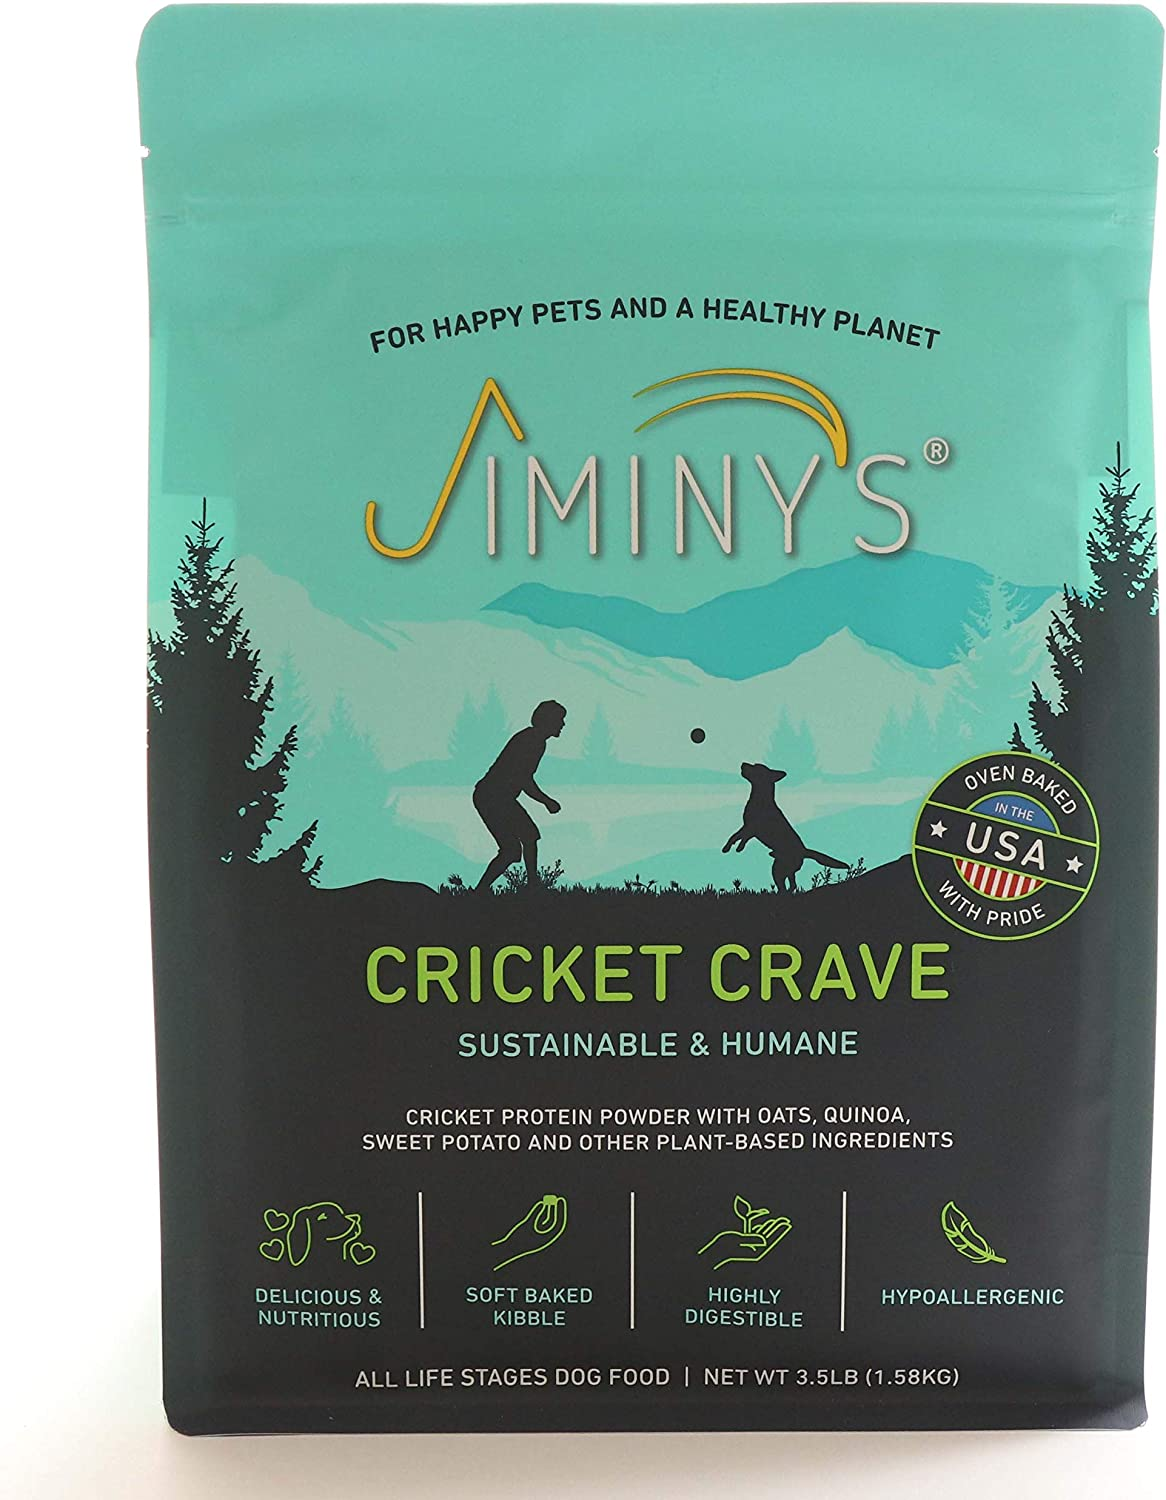 Jiminy's Cricket Crave Cricket Protein Oven-Baked Dog Food 3.5 lb Bag   100% Made in The USA   Gluten-Free   Sustainable   Limited Ingredients   High Protein   Hypoallergenic